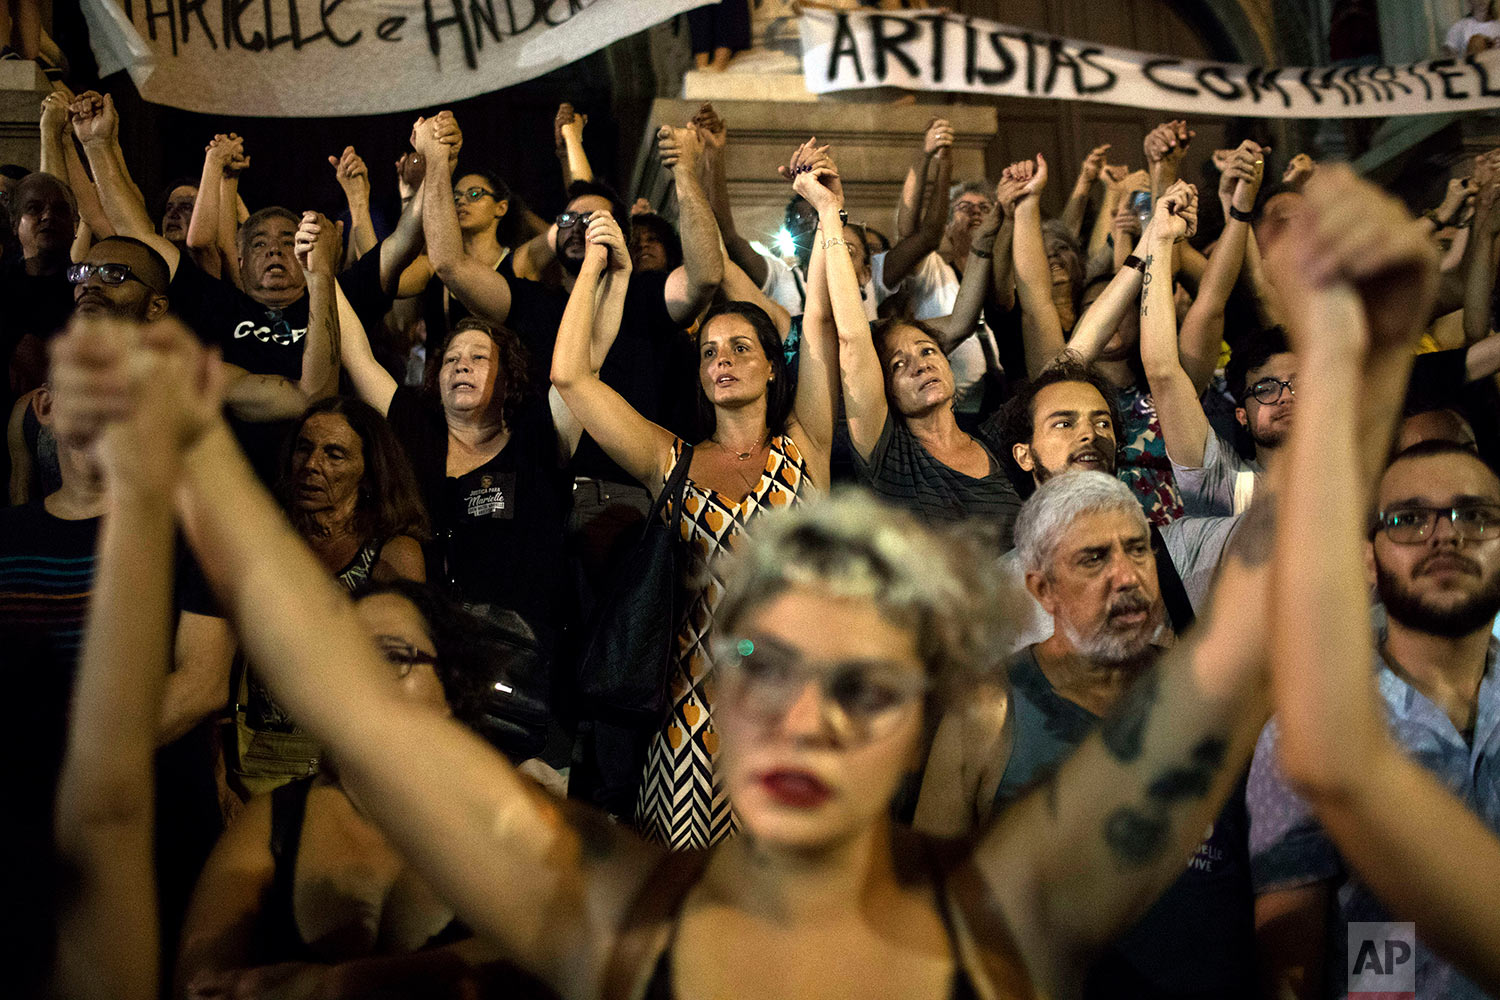 Women hold hands during continued protests against the murder of councilwoman and human rights activist Marielle Franco in Rio de Janeiro, Brazil, March 20, 2018. Franco and her driver, Anderson Pedro Gomes, were shot dead by assailants while returning from an event focused on empowering young black women. (AP Photo/Leo Correa)